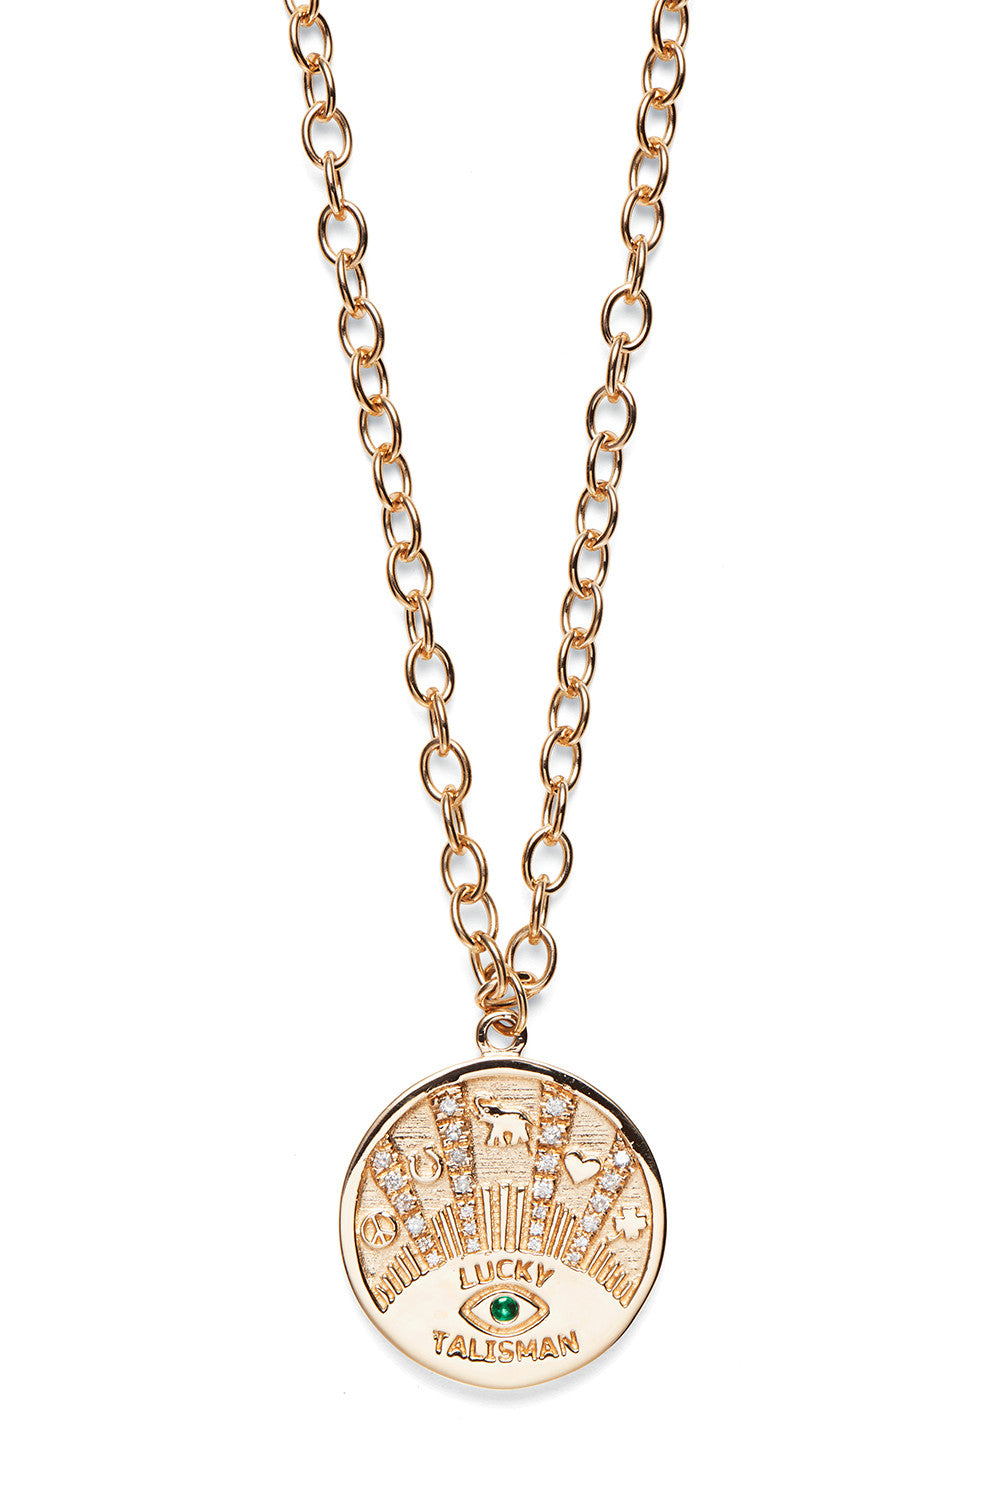 necklace roman oxidised curb vermeil fine joy and jewellers chain products light oxidsed golden coin everley london